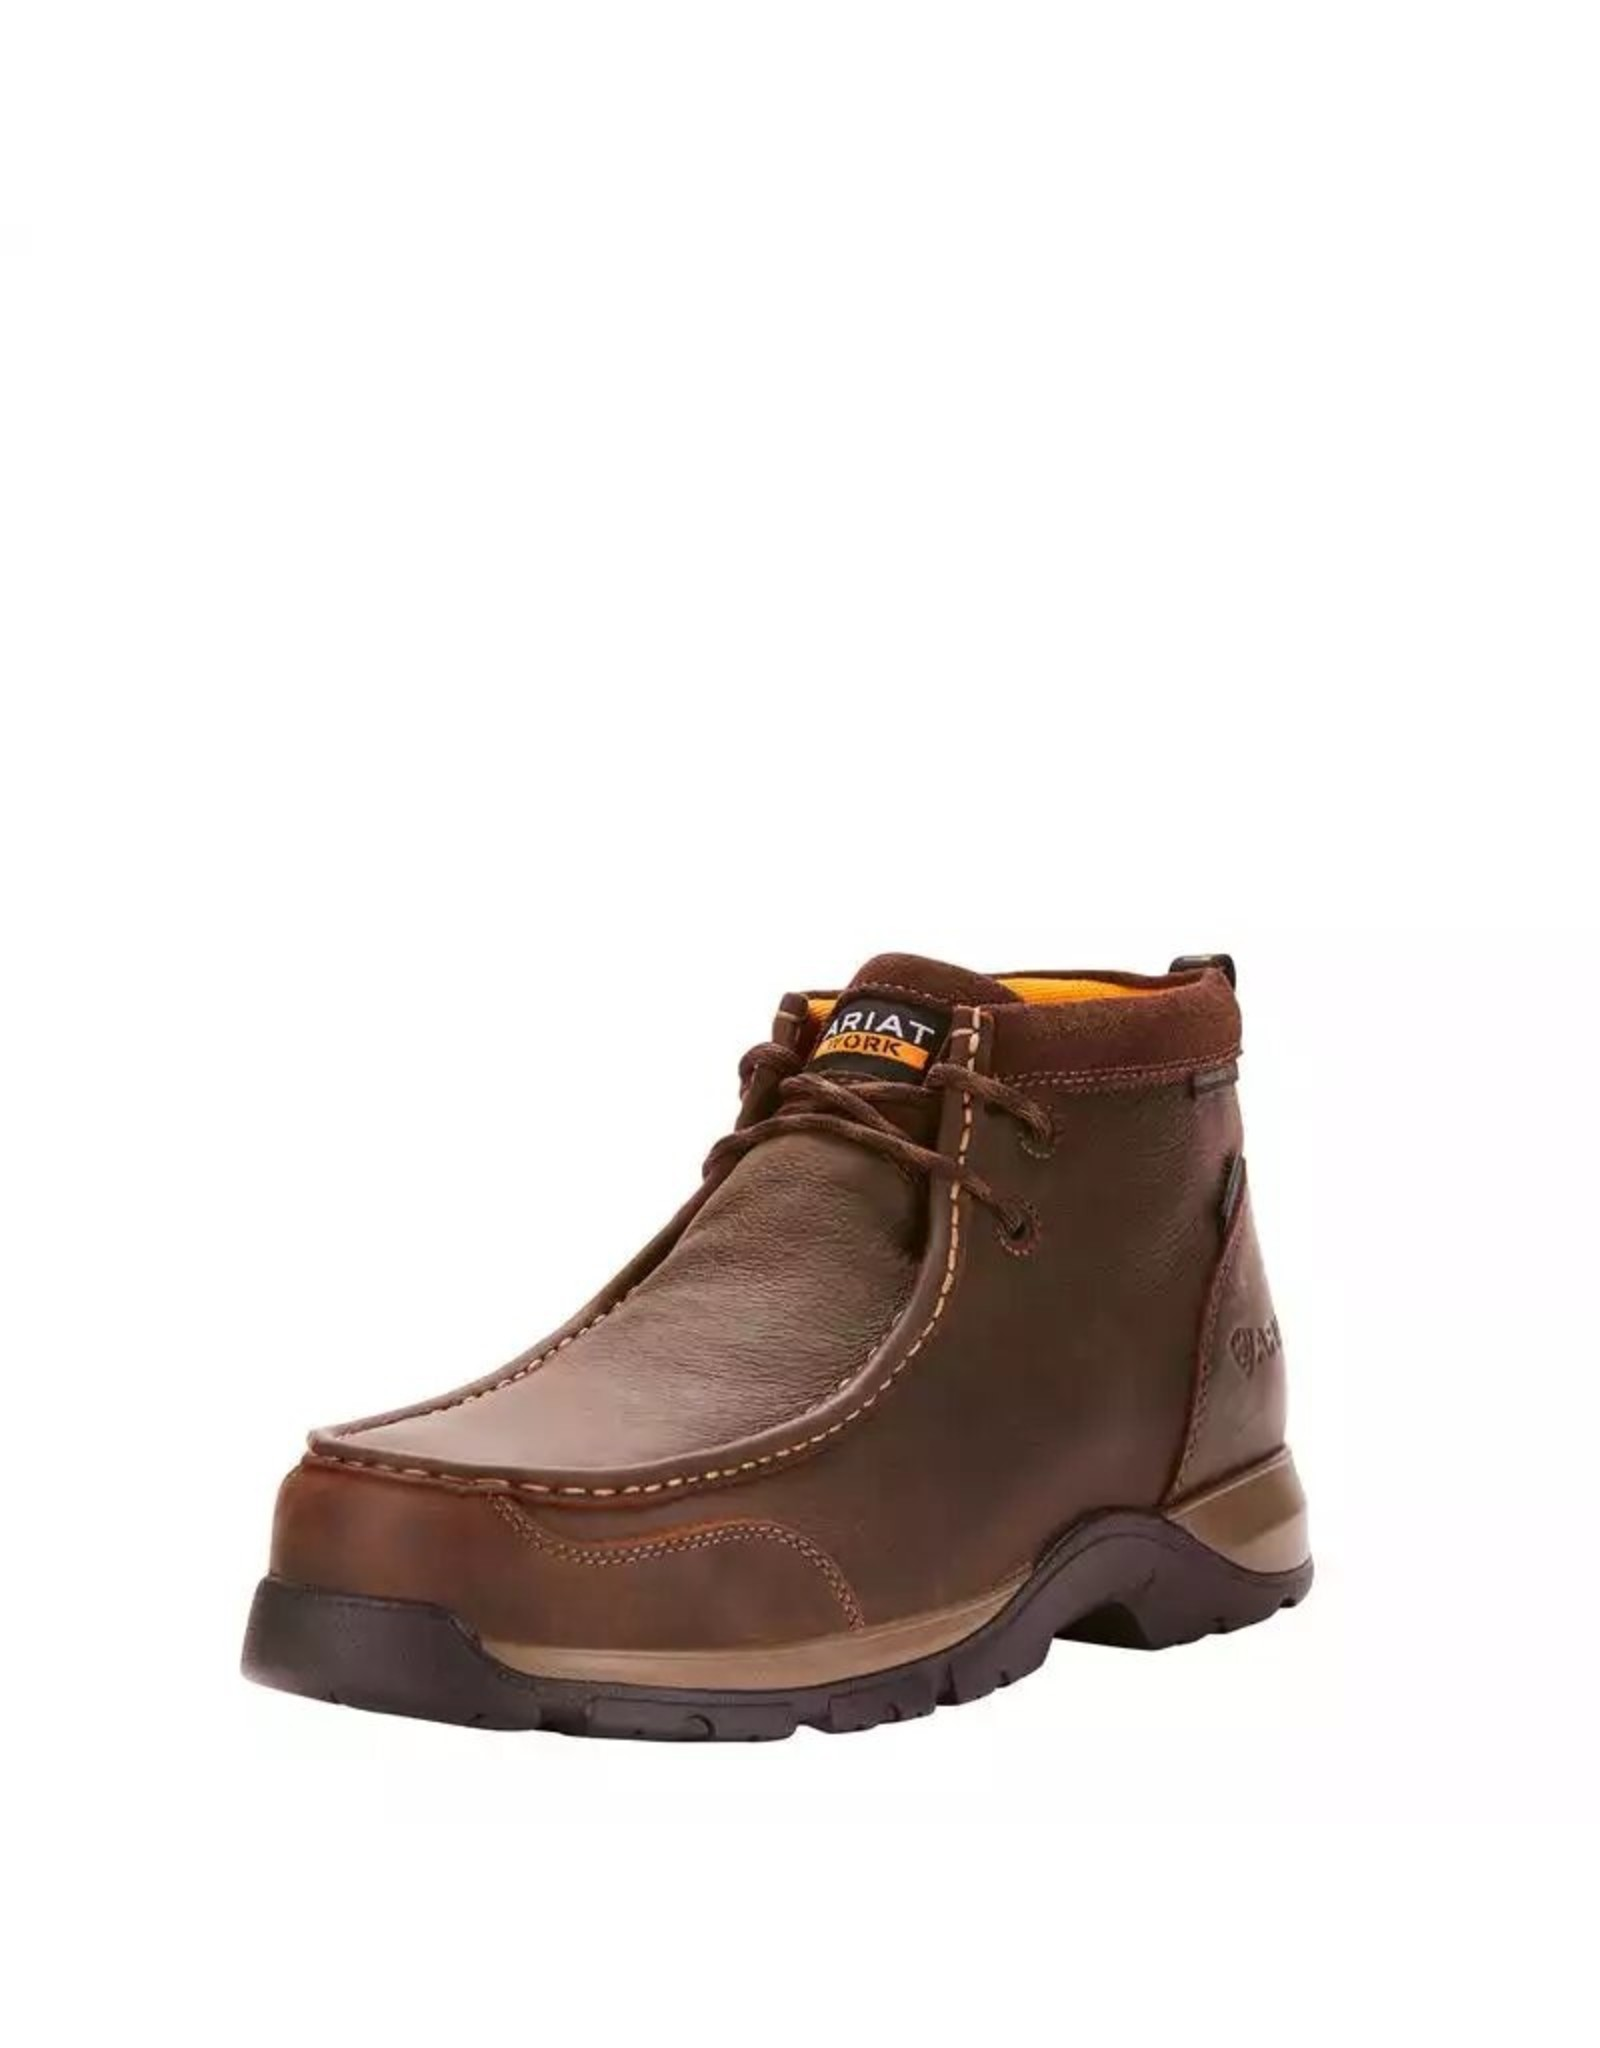 Boots-Men ARIAT Edge LTE H2O Comp Toe